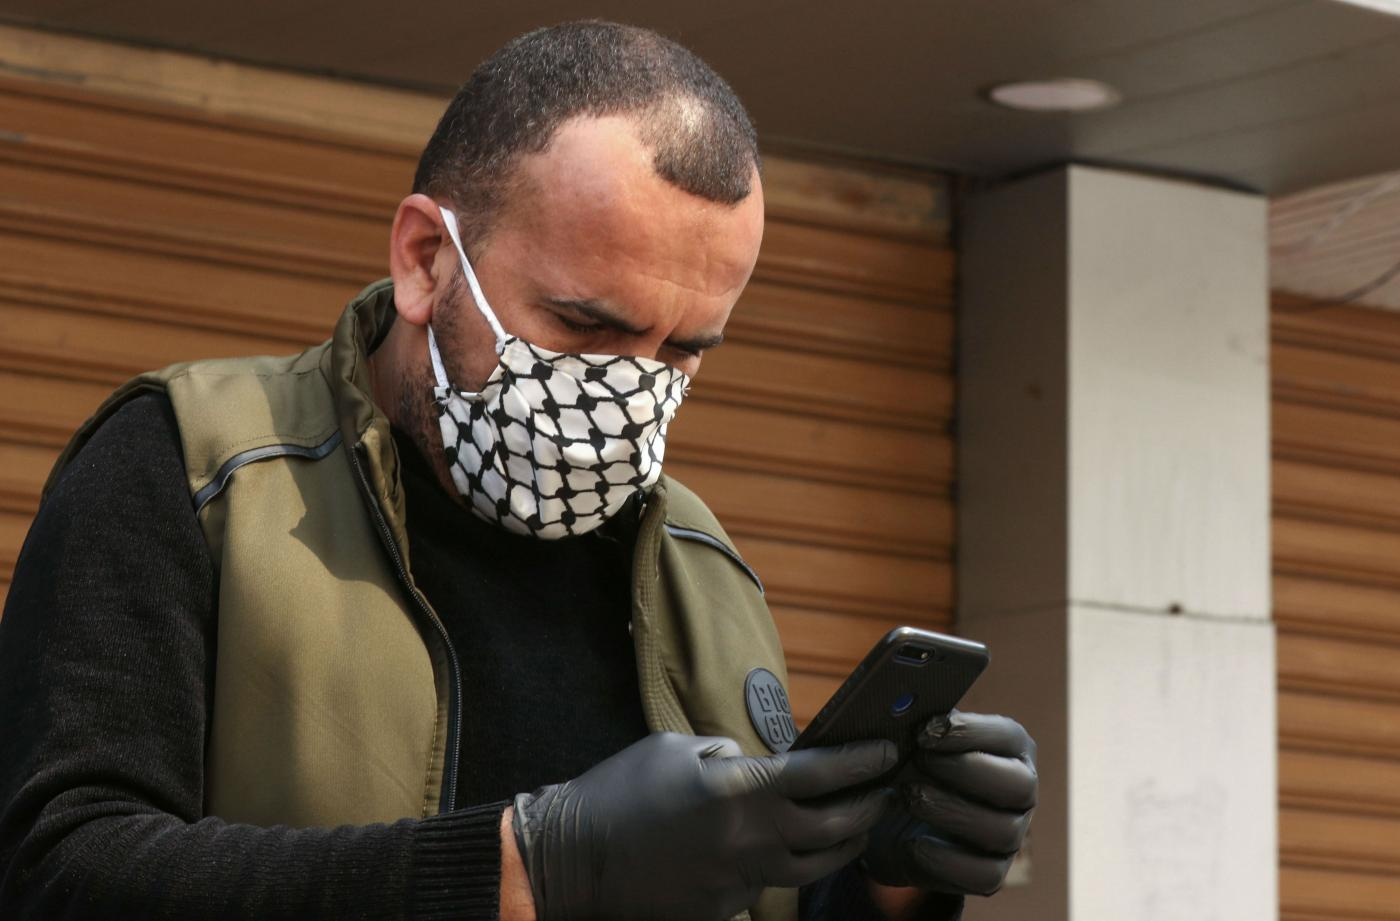 'The Coordinator': Israel instructs Palestinians to download app that tracks their phones